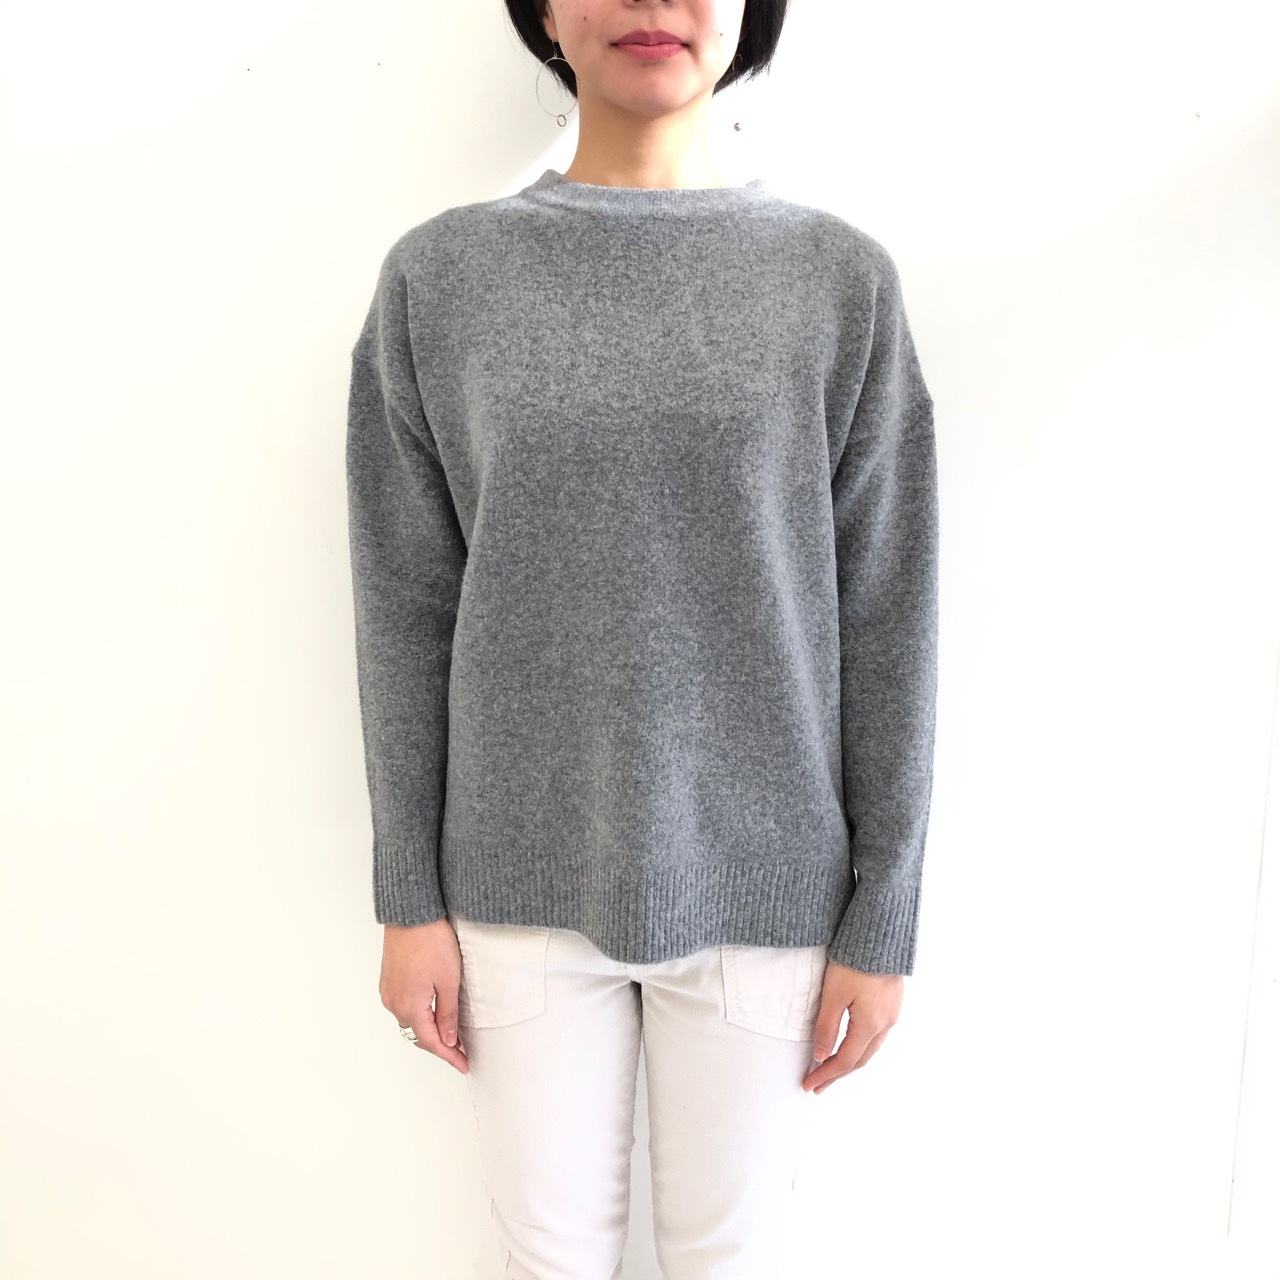 【 siro de labonte】- R933109 - yak feel design po knit